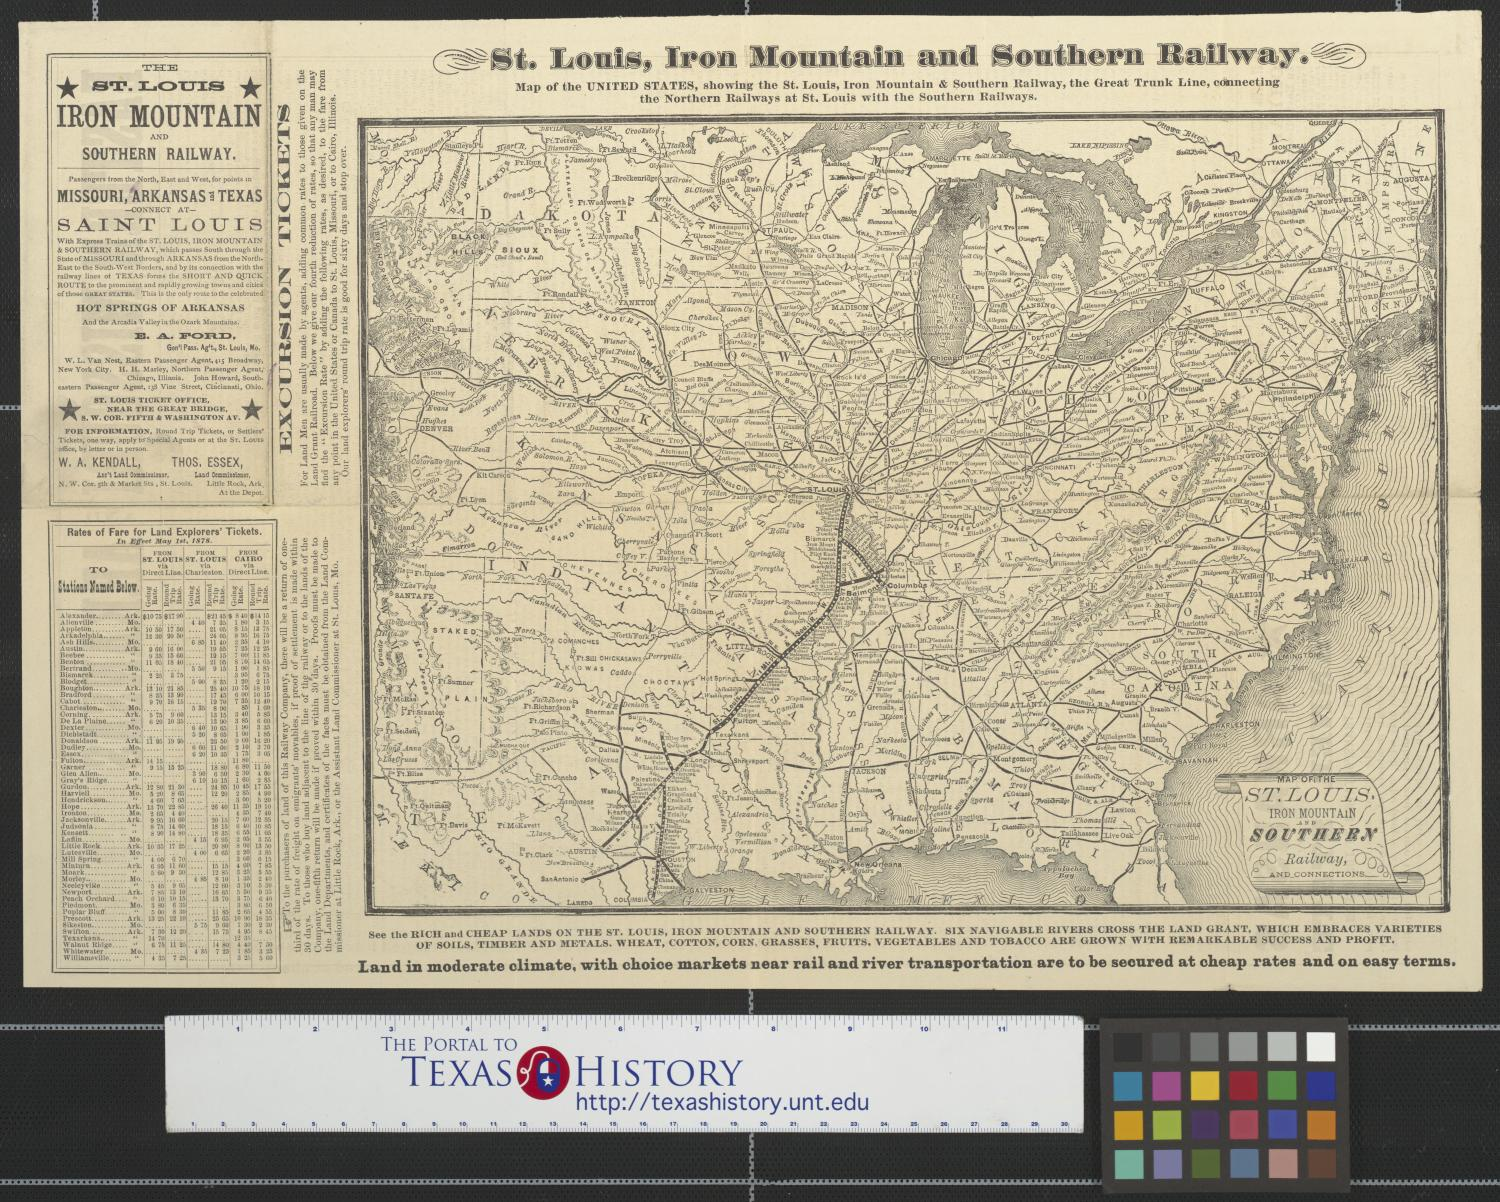 Map of the St. Louis, Iron Mountain and Southern Railway and ...